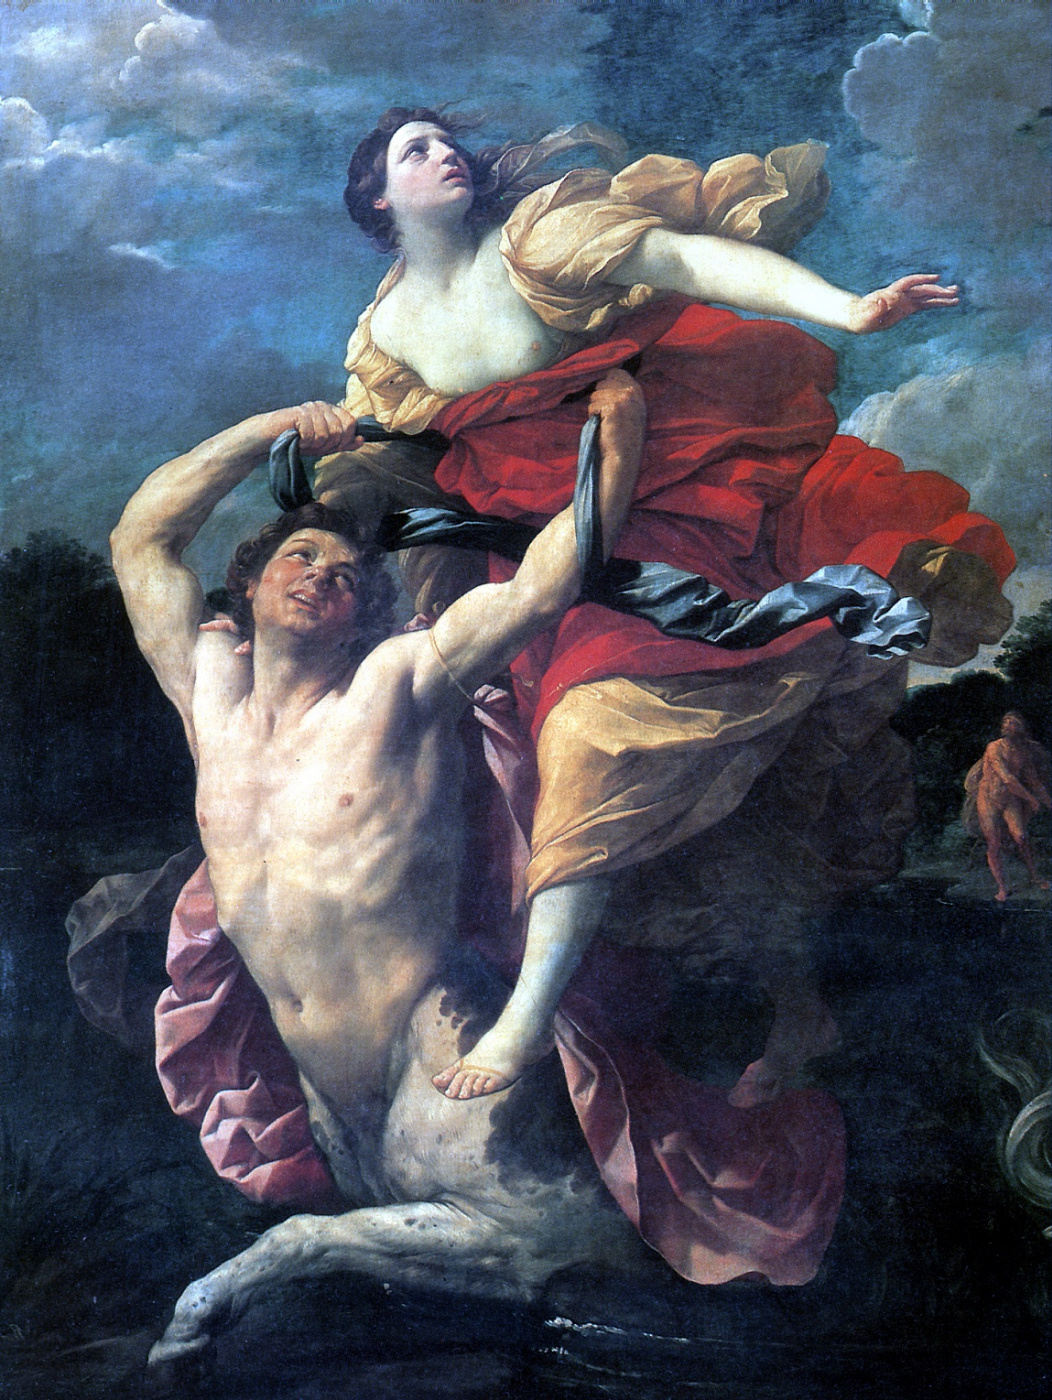 Guido Reni. Deianeira abducted by the centaur